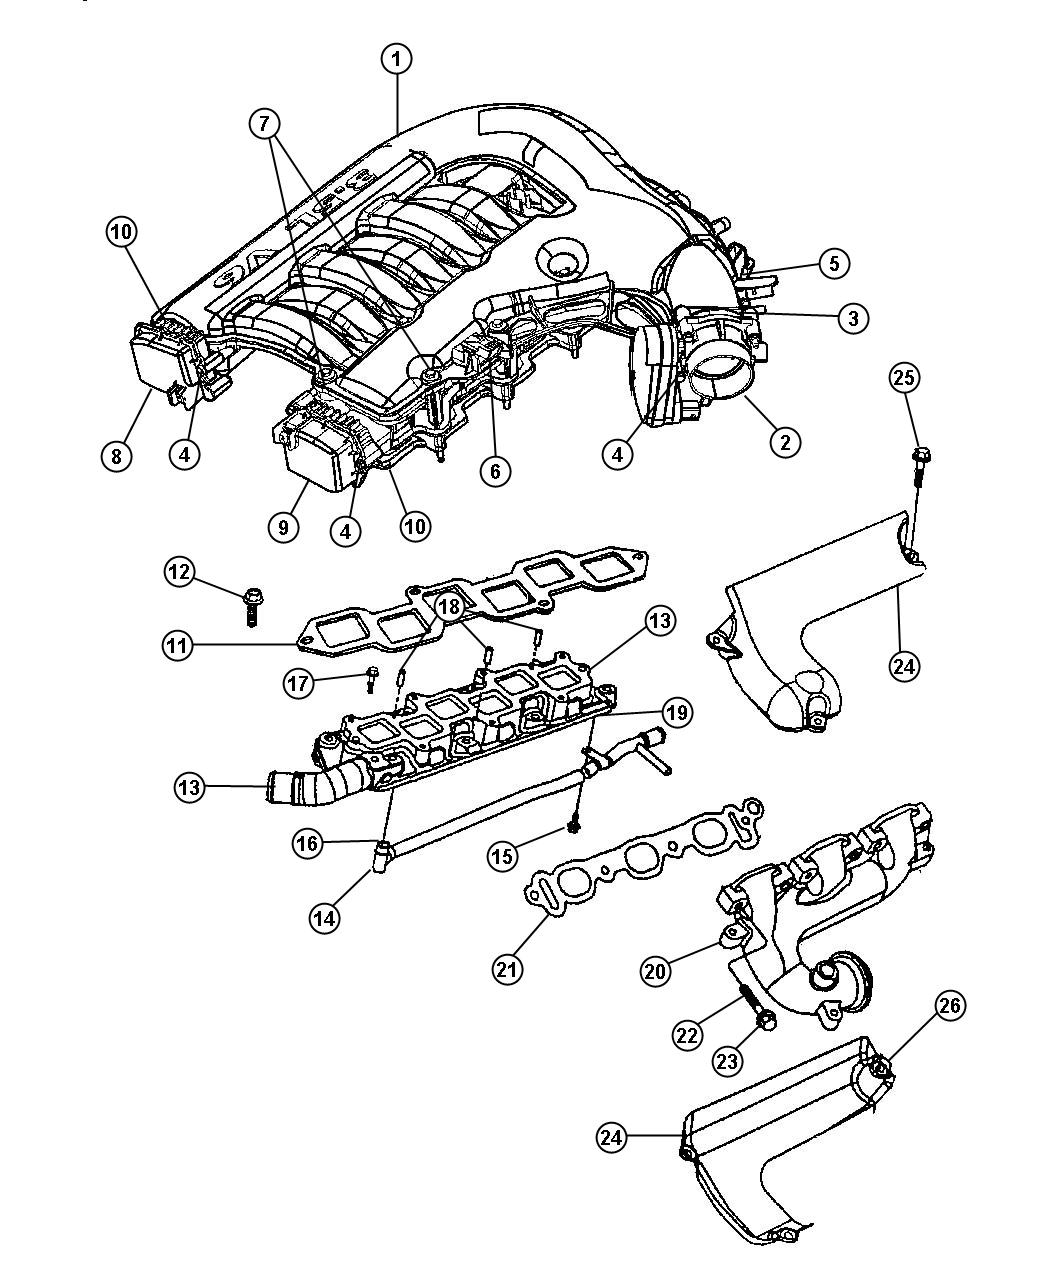 Dodge Charger Actuator Actuator Package Manifold Tuning